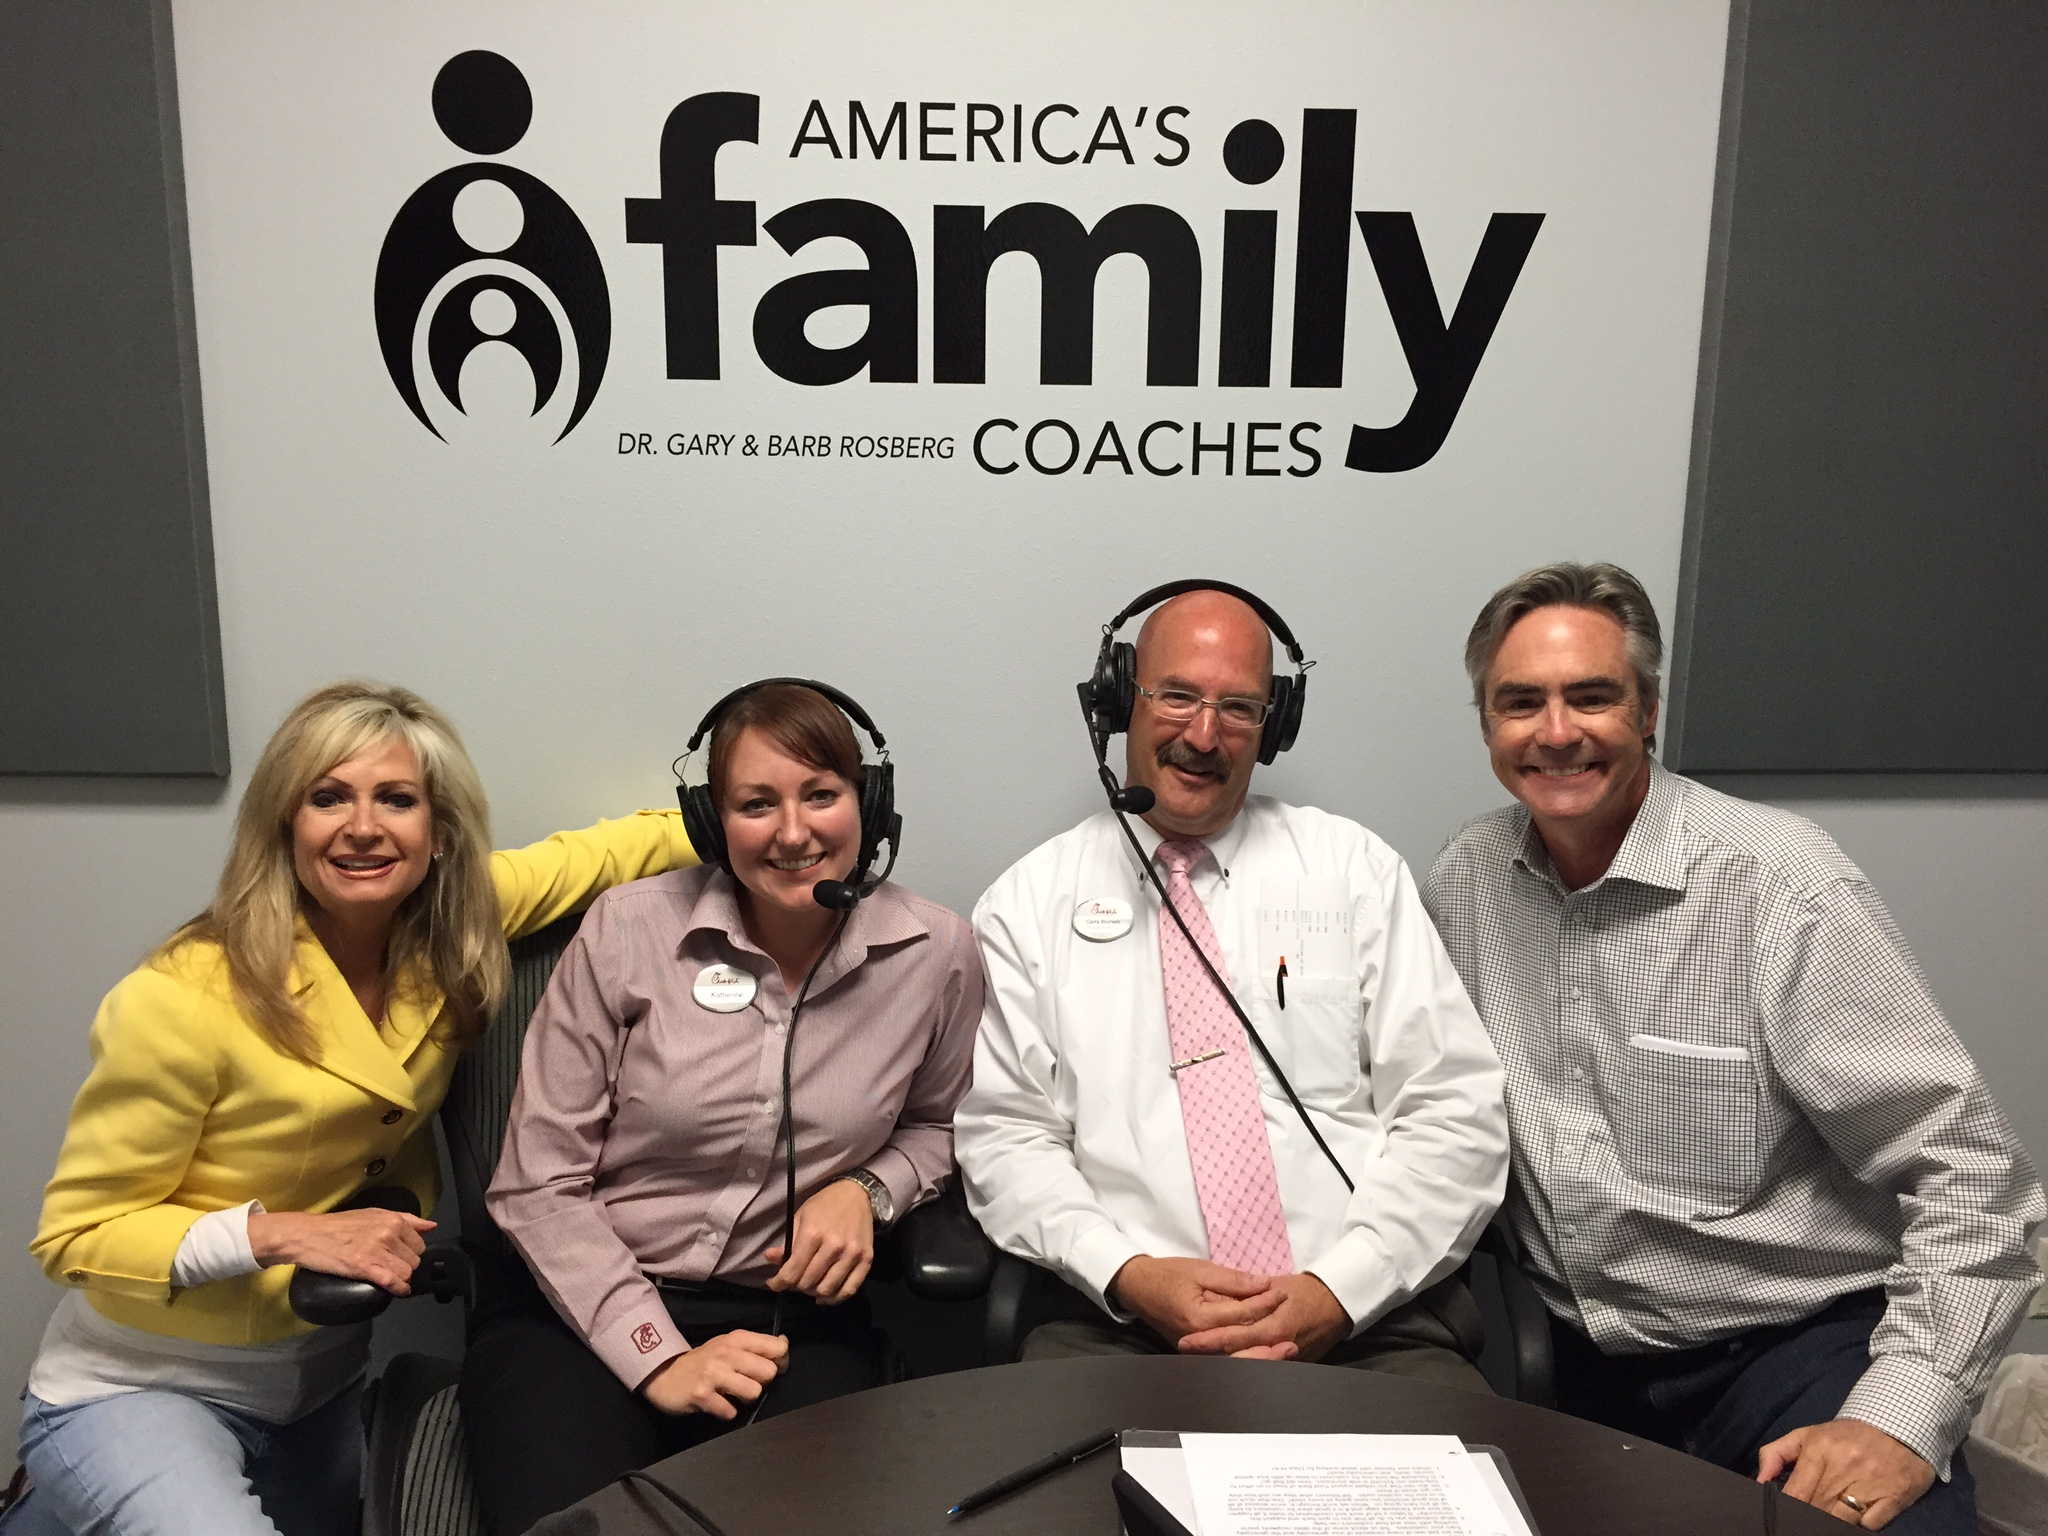 chick-fil-a-paradise-pointe-americas-family-coaches-audio-podcast-gary-barb-rosberg